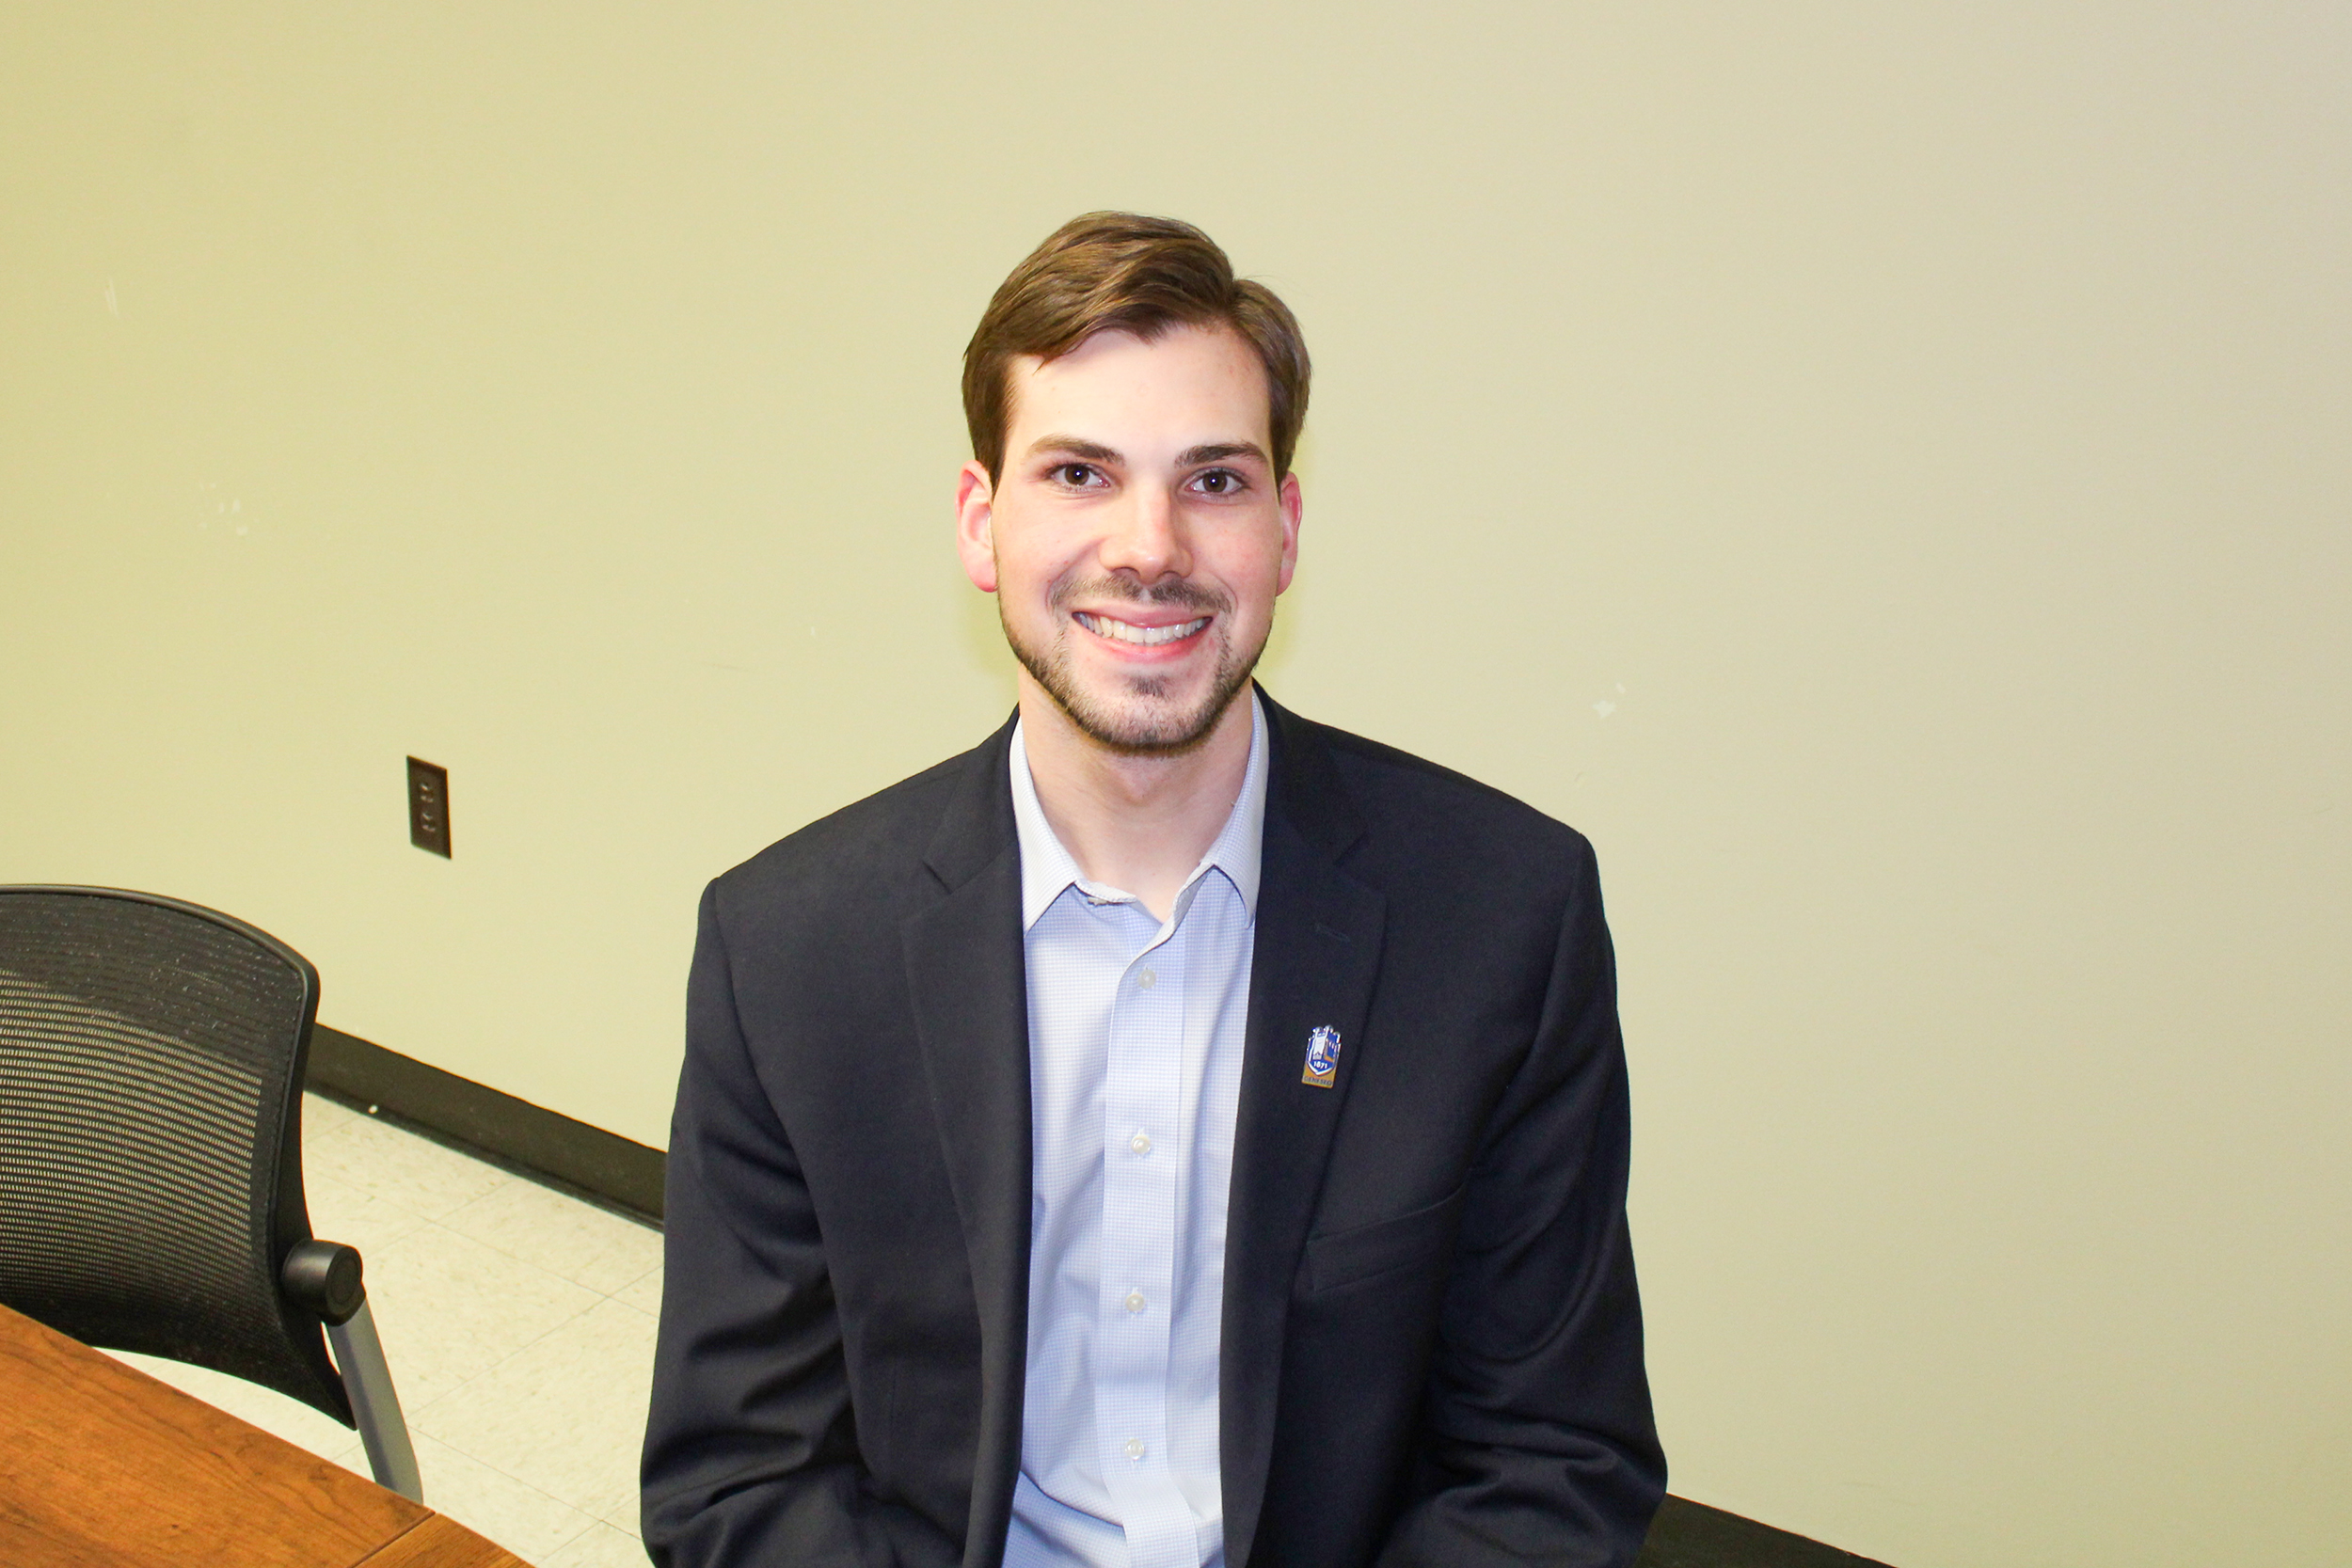 Adam Hansen is a biology and political science double major junior who is running to be the SA President for the next academic year. He is one of two candidates running for the position. Hansen currently serves as SA Vice President. (Malachy Dempsey/Managing editor)